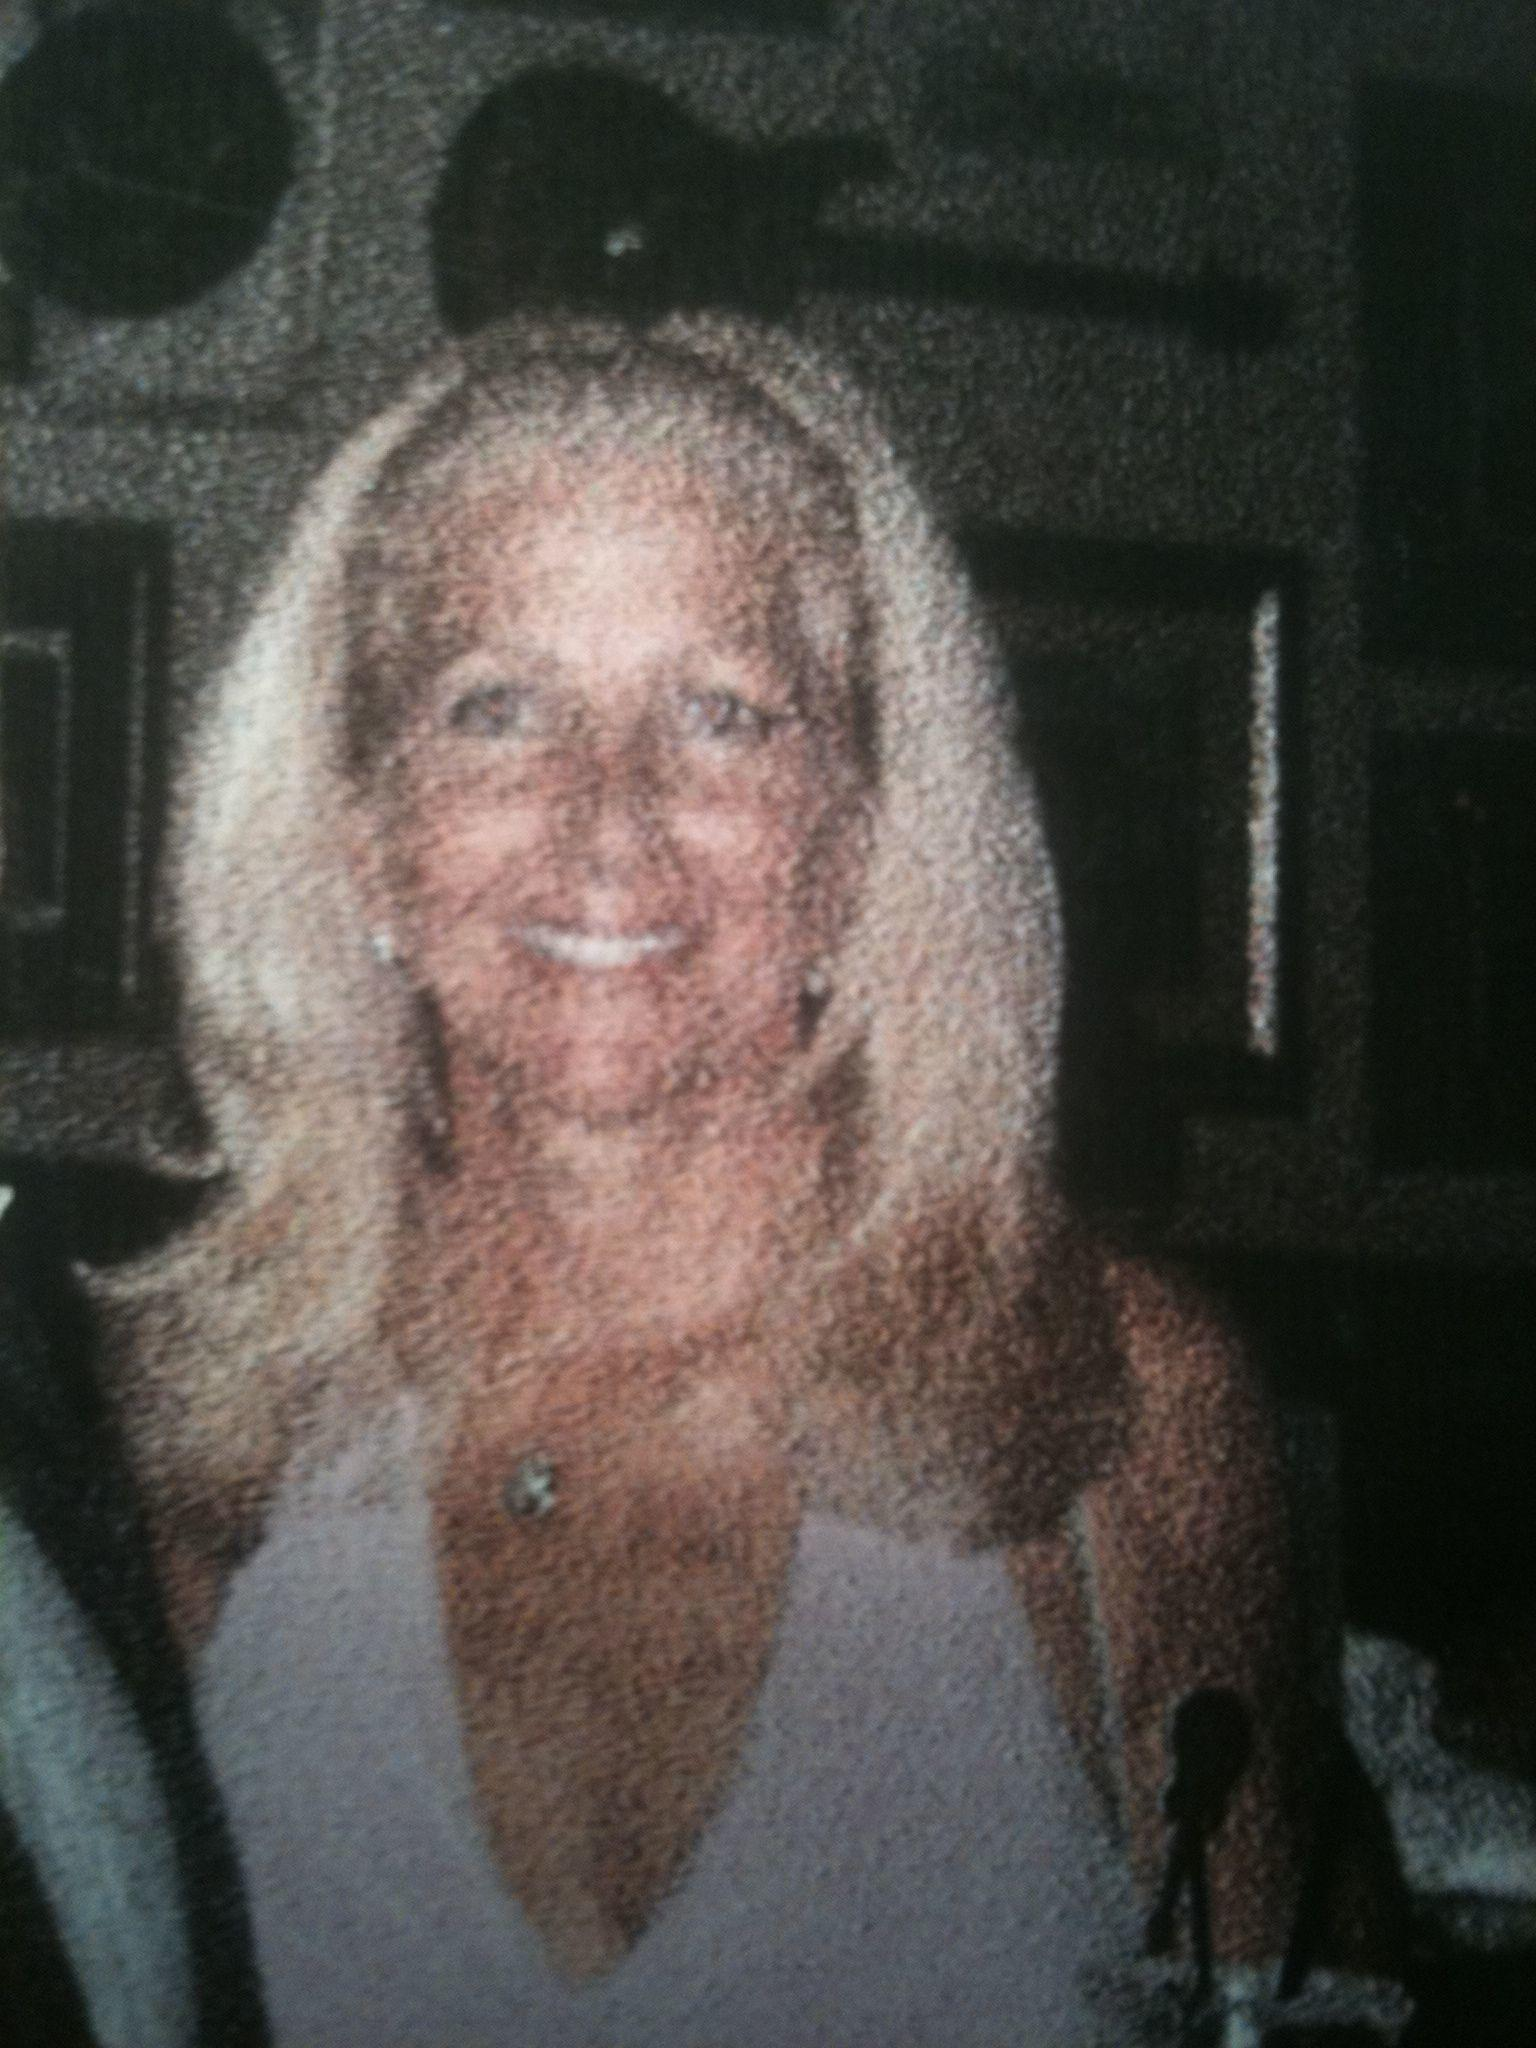 pompano beach single mature ladies Search single 50+ men in pompano beach | search single 50+ women in pompano beach ablance51 pompano beach, fl 8 more photos 66 years old mature dating.